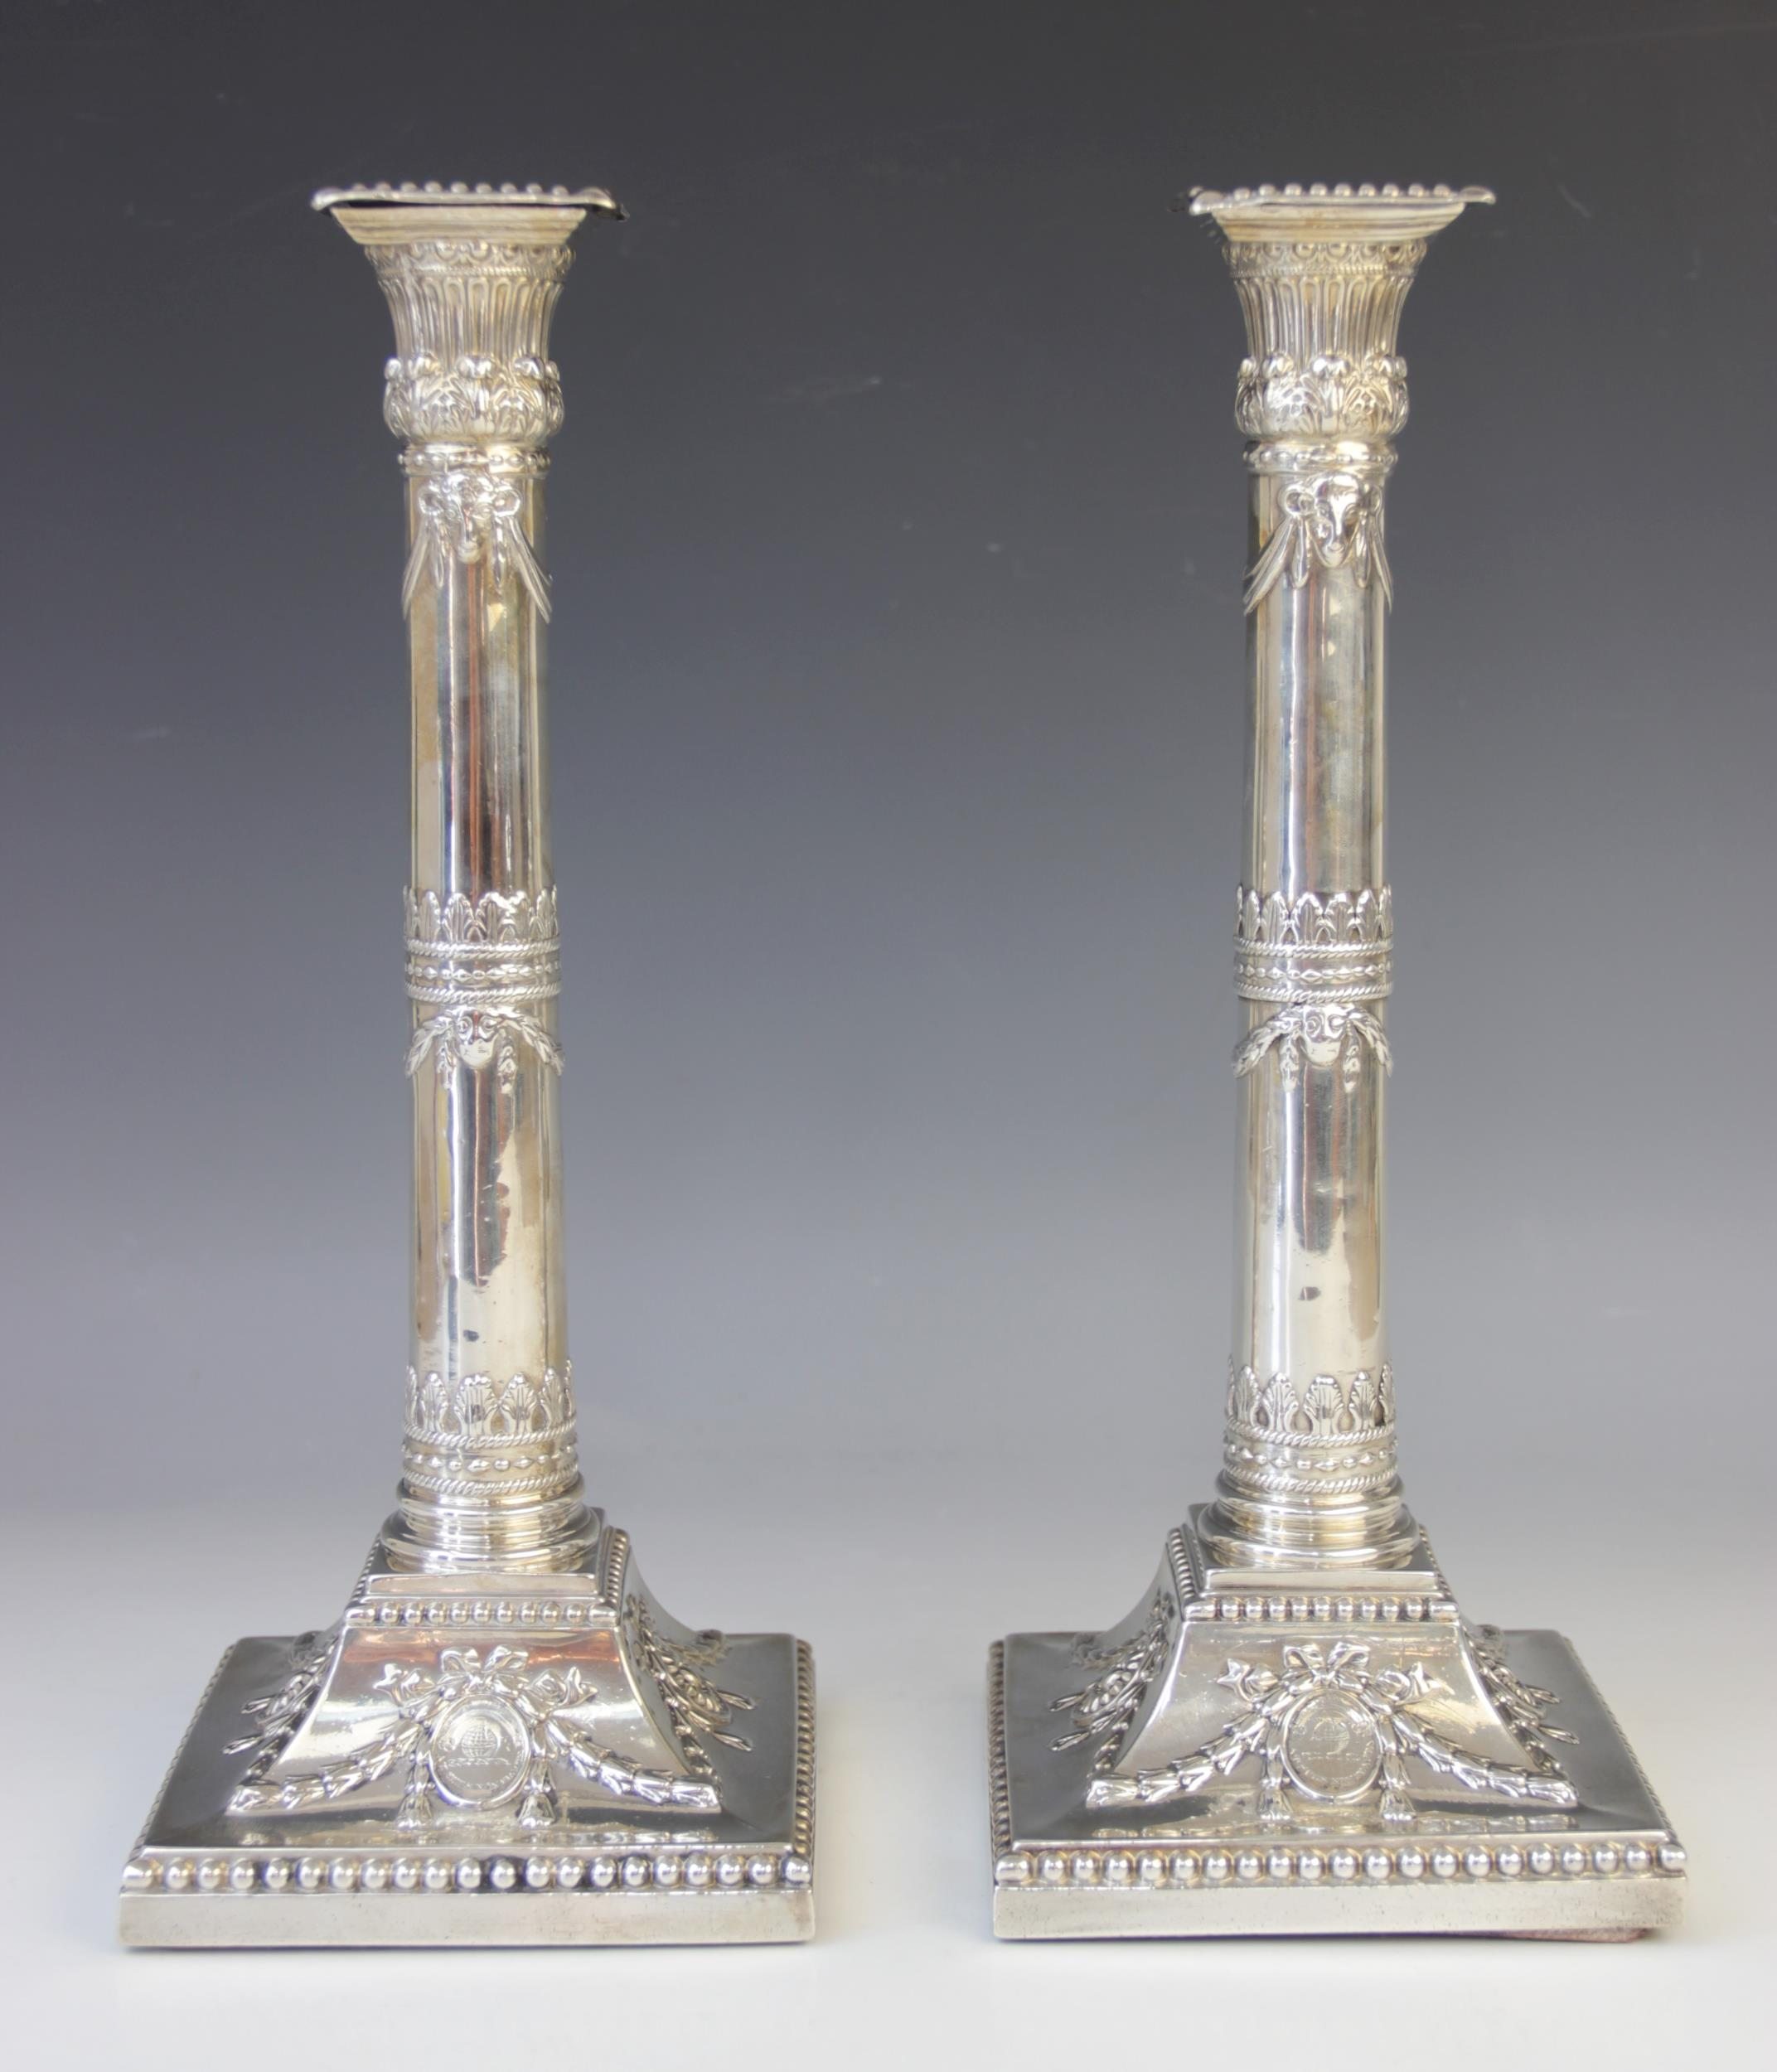 A pair of George III silver candlesticks, marked for Patrick Robertson, Edinburgh, Sheffield date